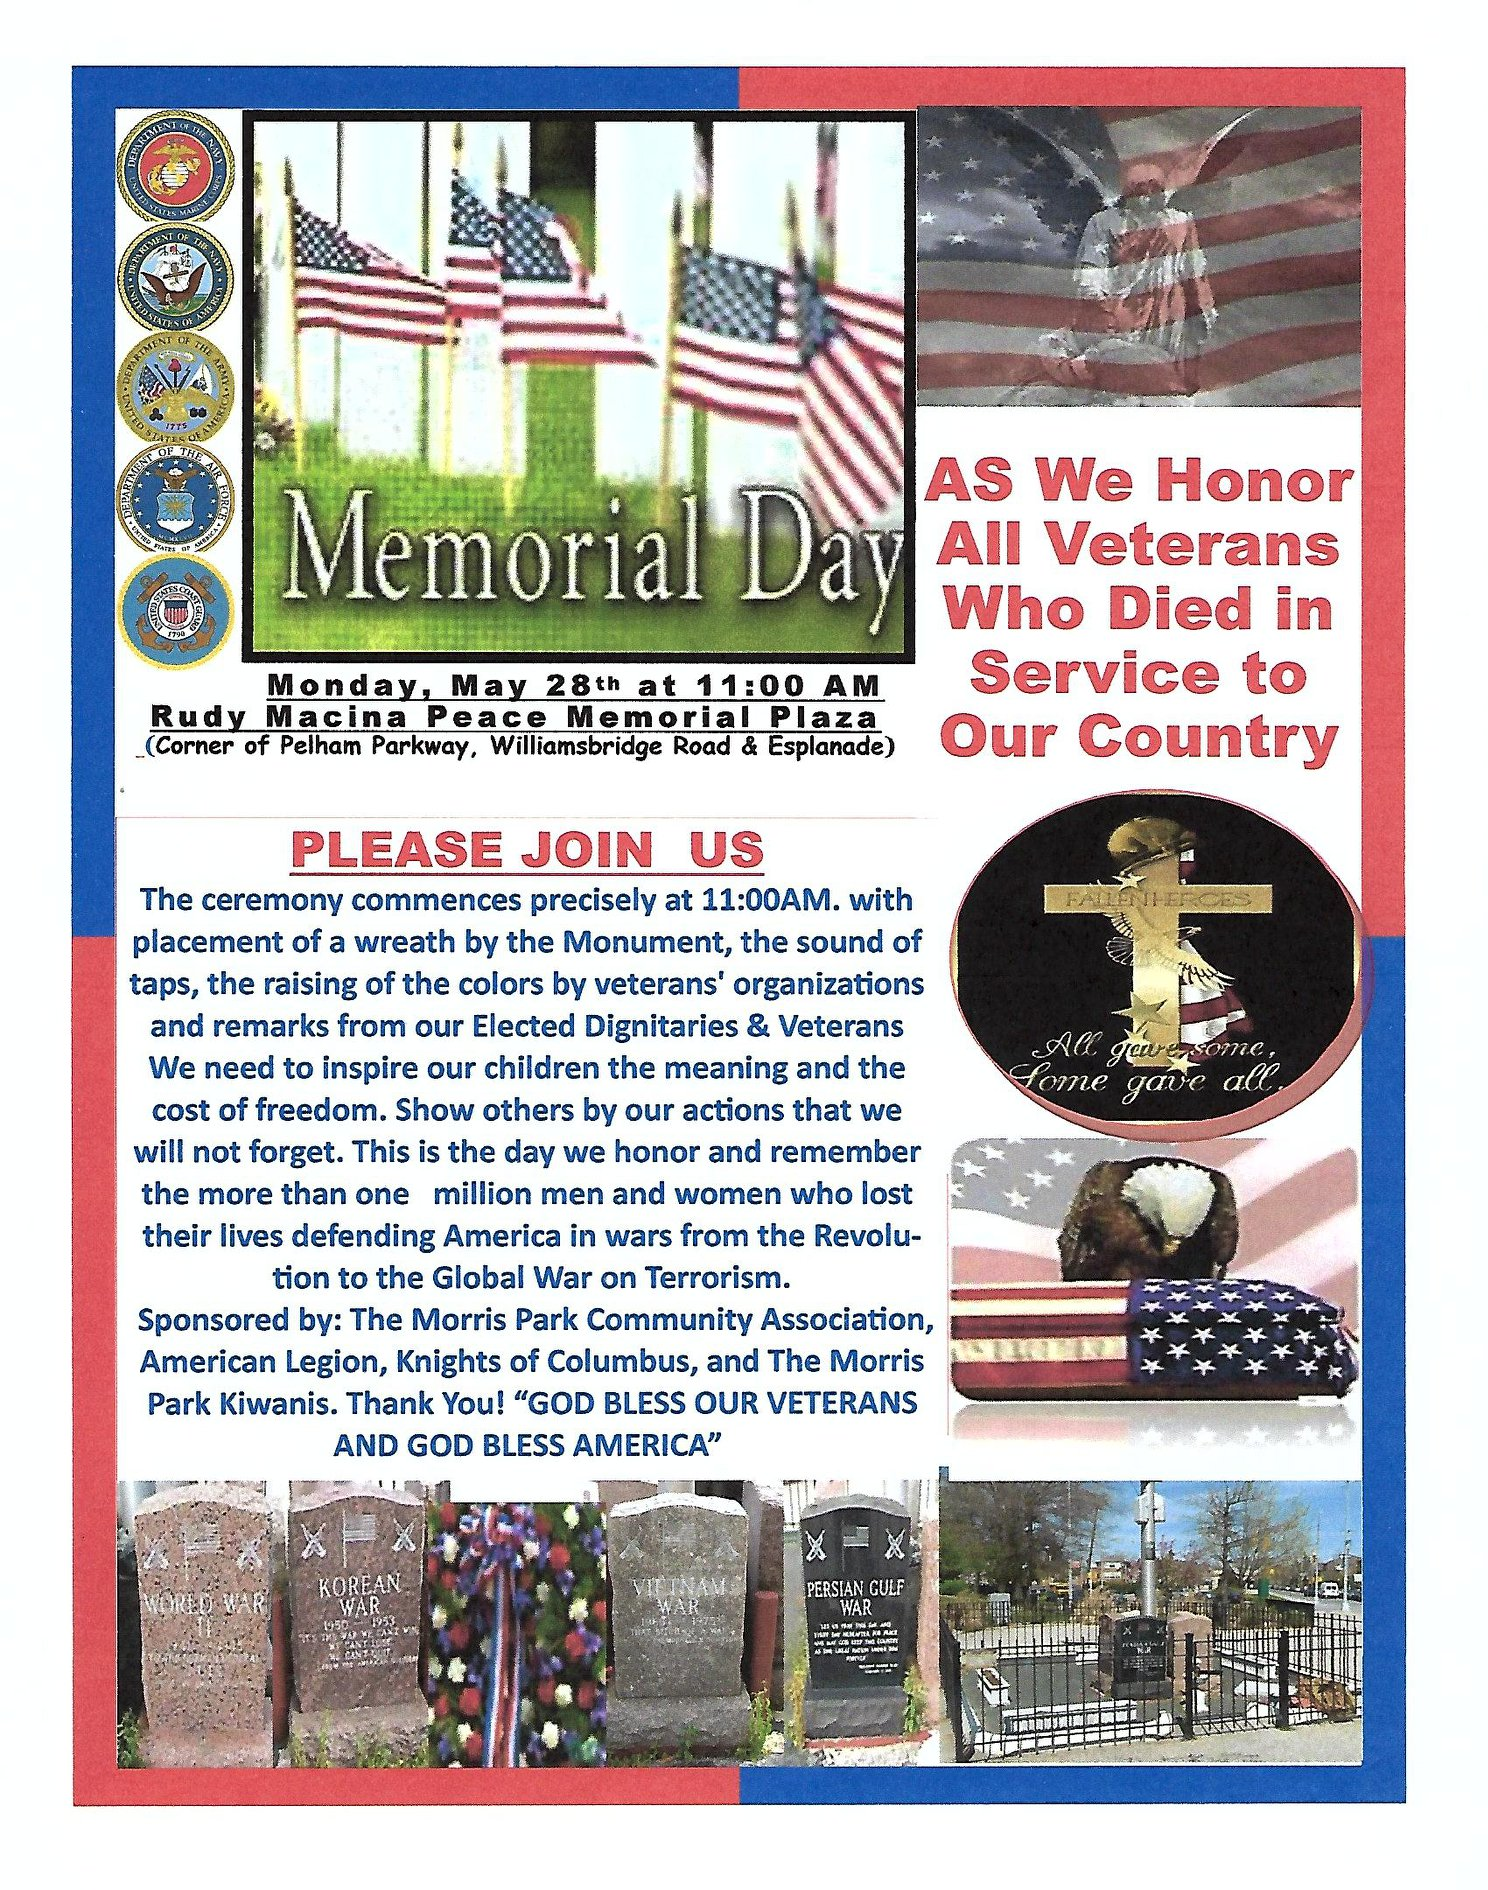 MEMORIAL DAY CEREMONY Monday, May 28th, 11:00AM